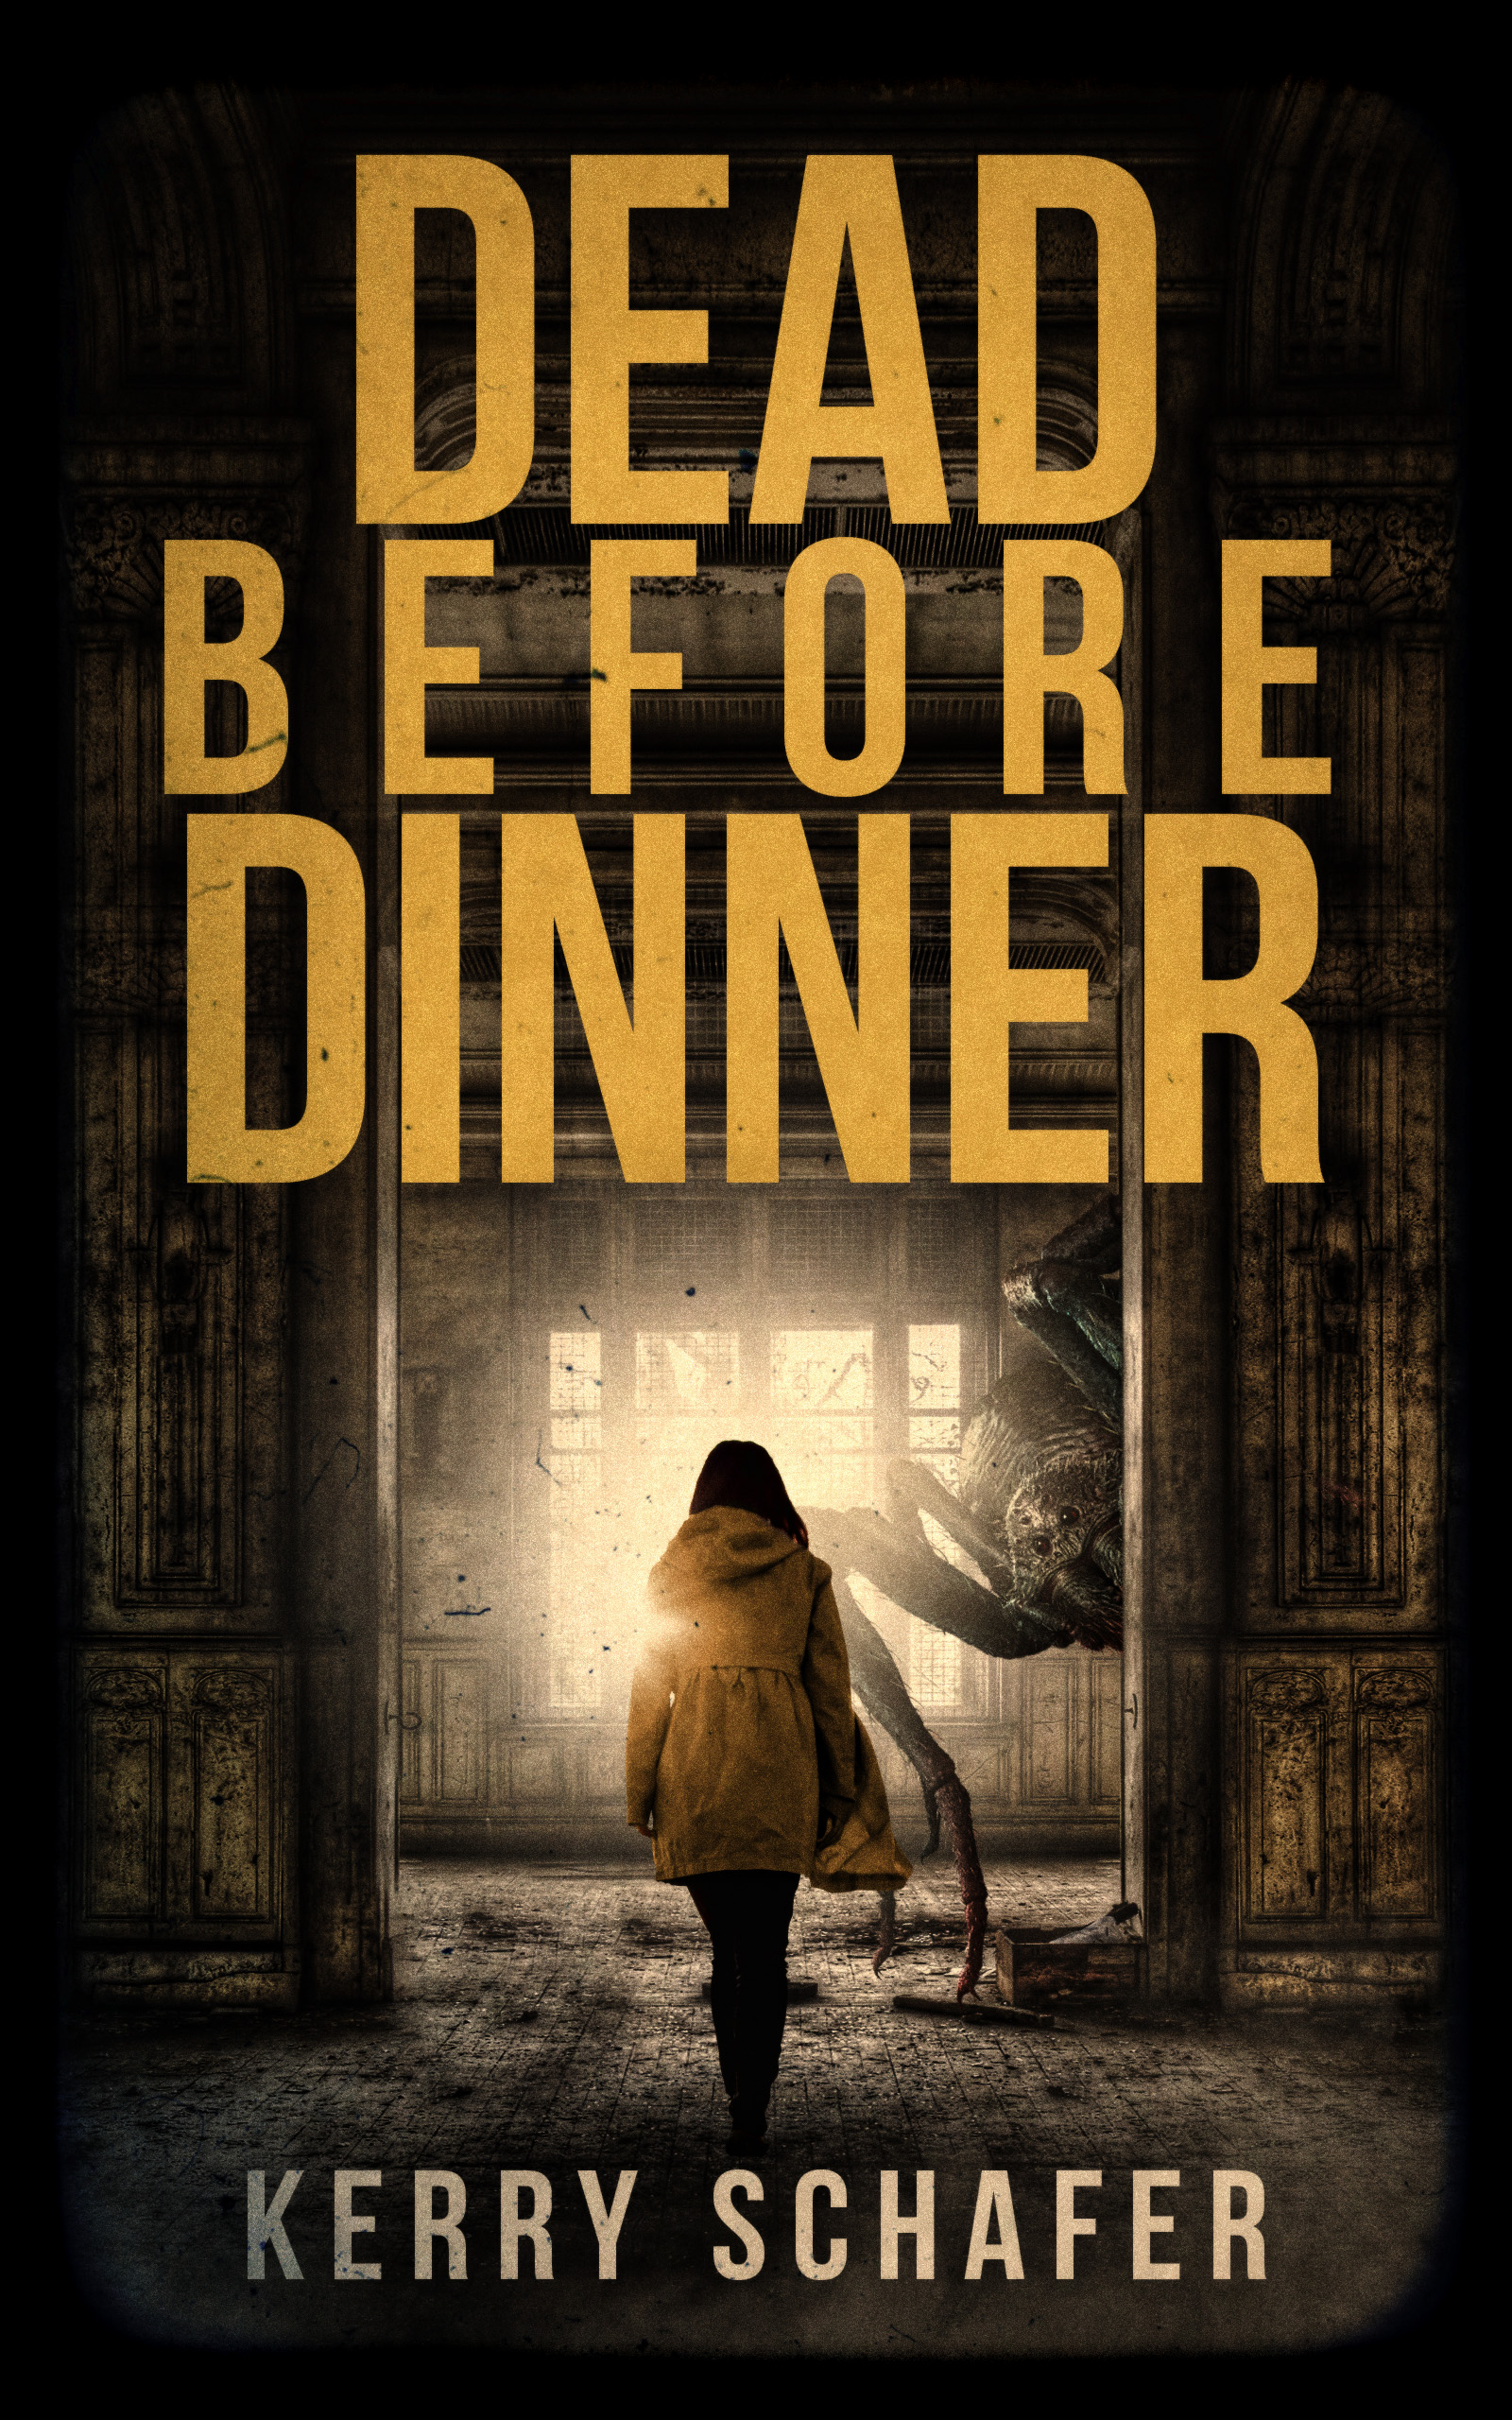 Dead before dinner book cover with woman walking into room with spider/monster